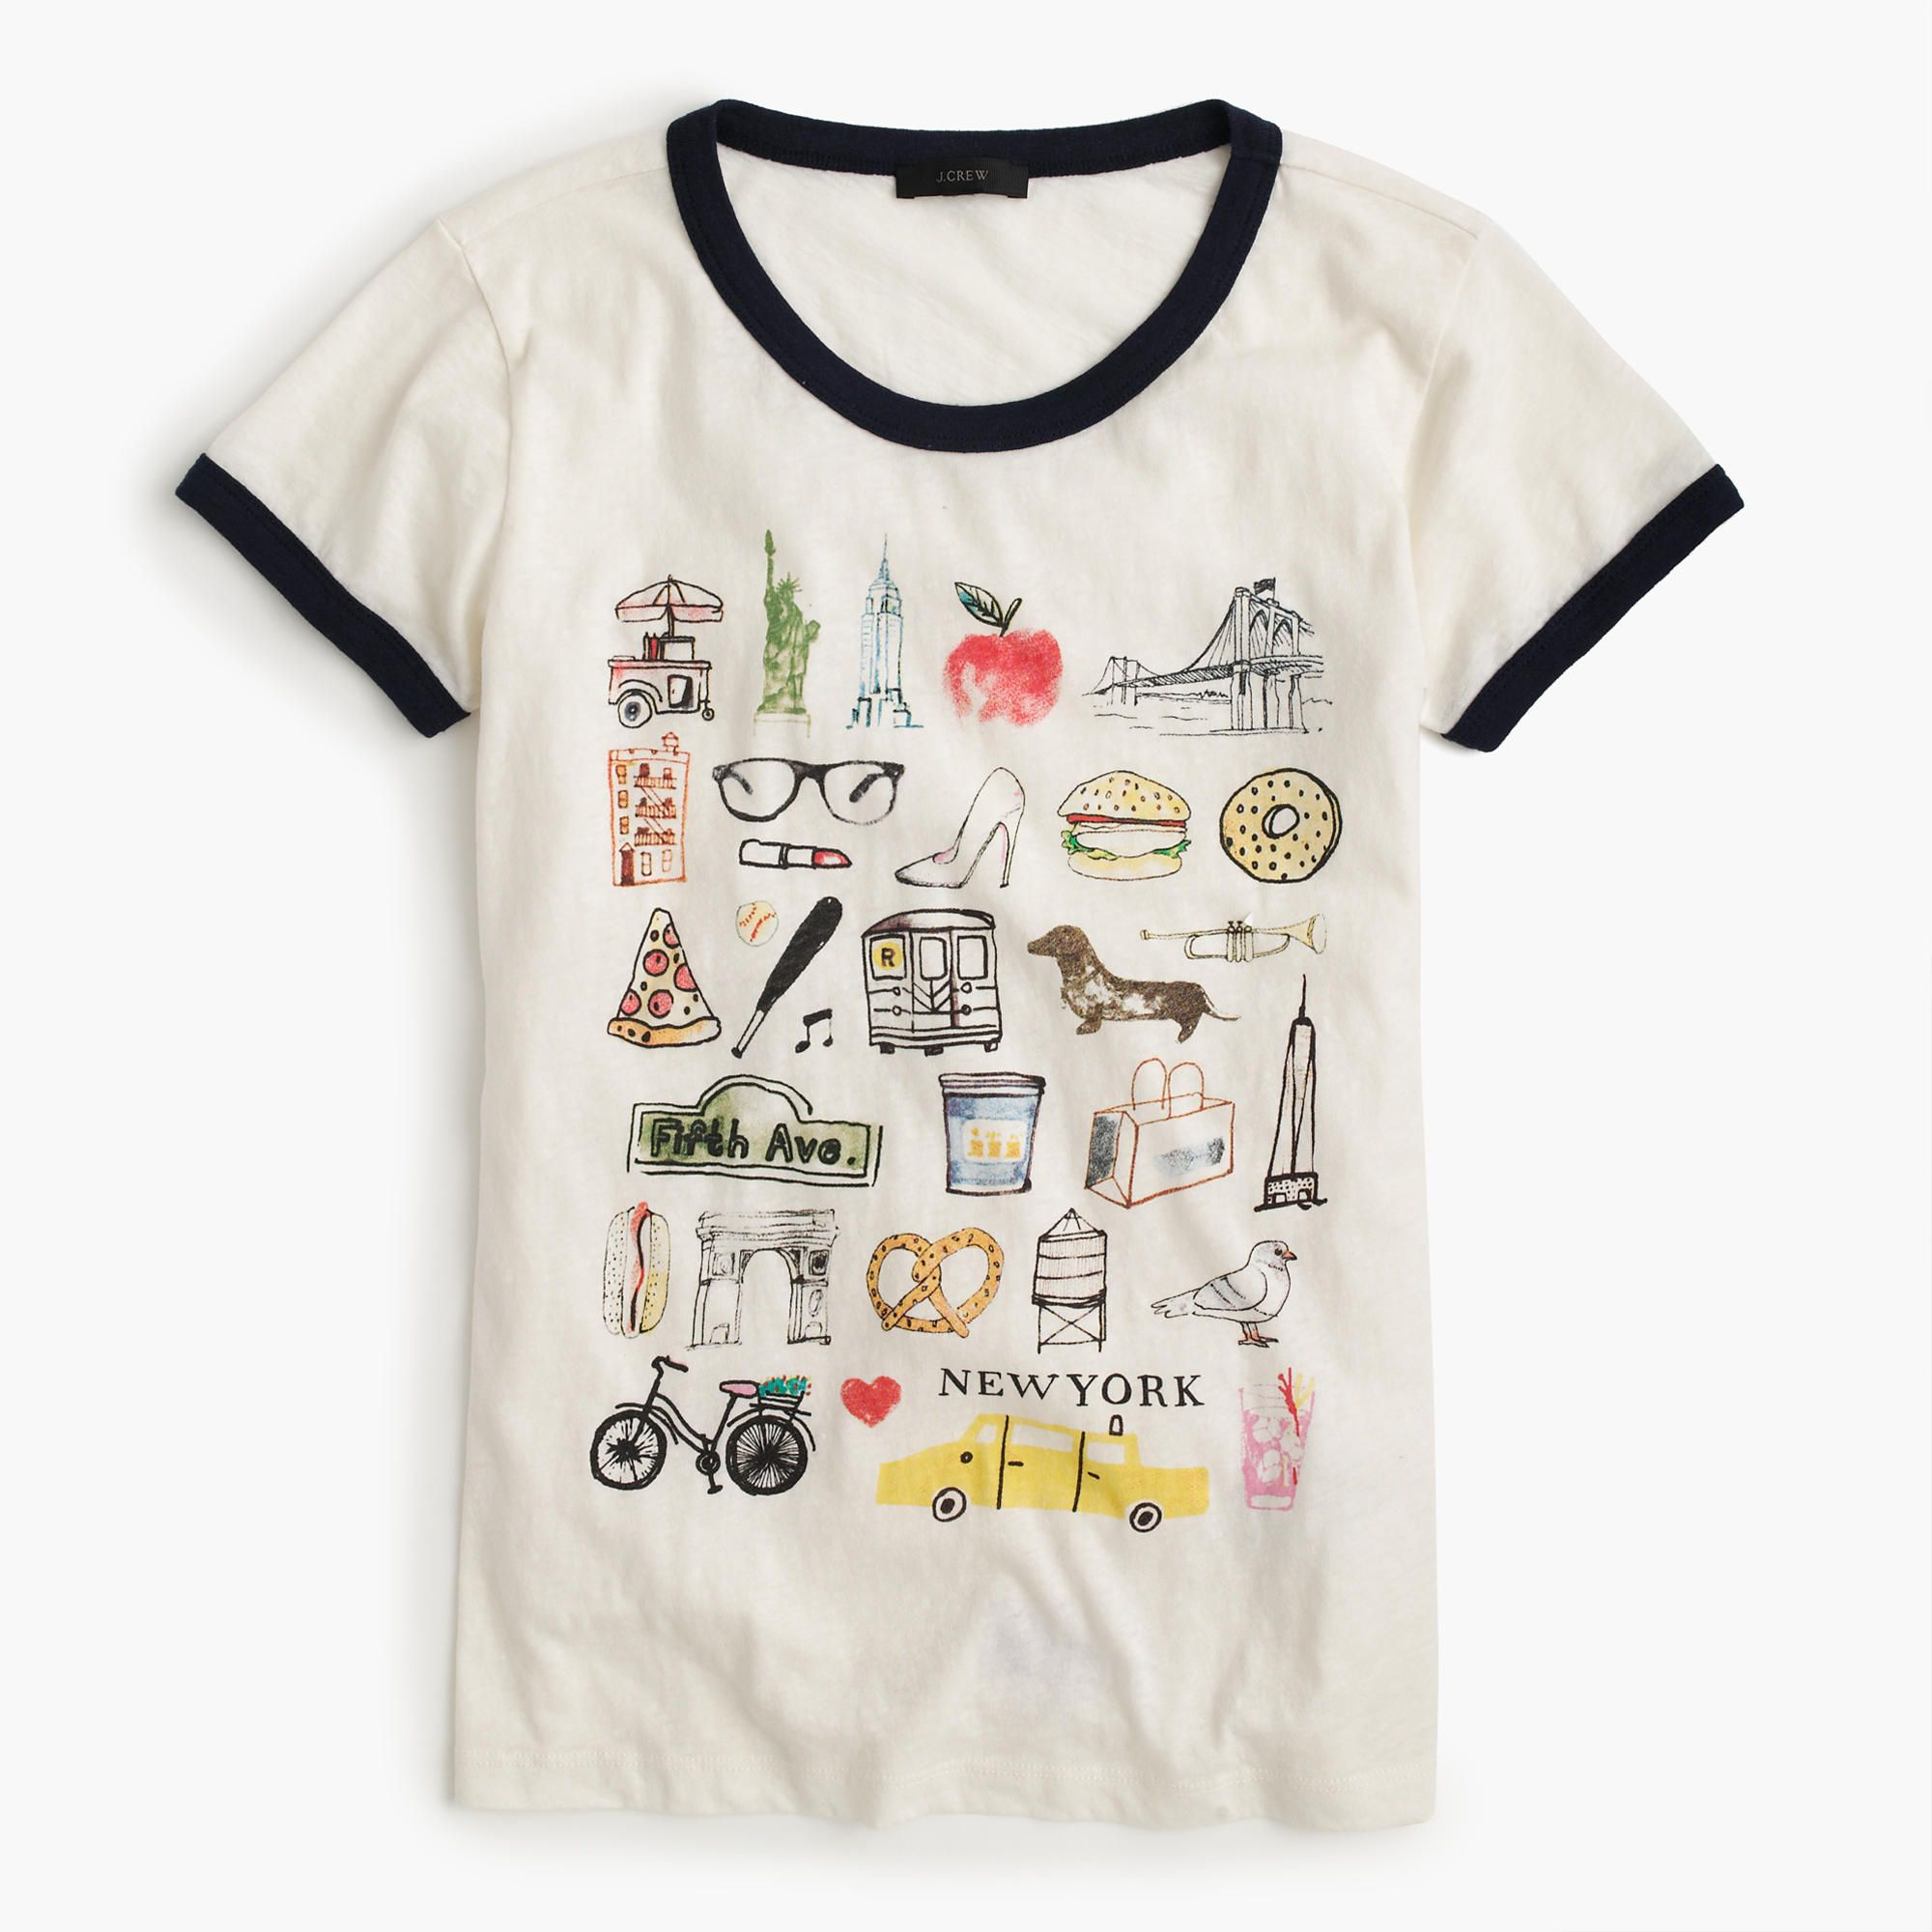 Shop the New York Destination Art TShirt at and